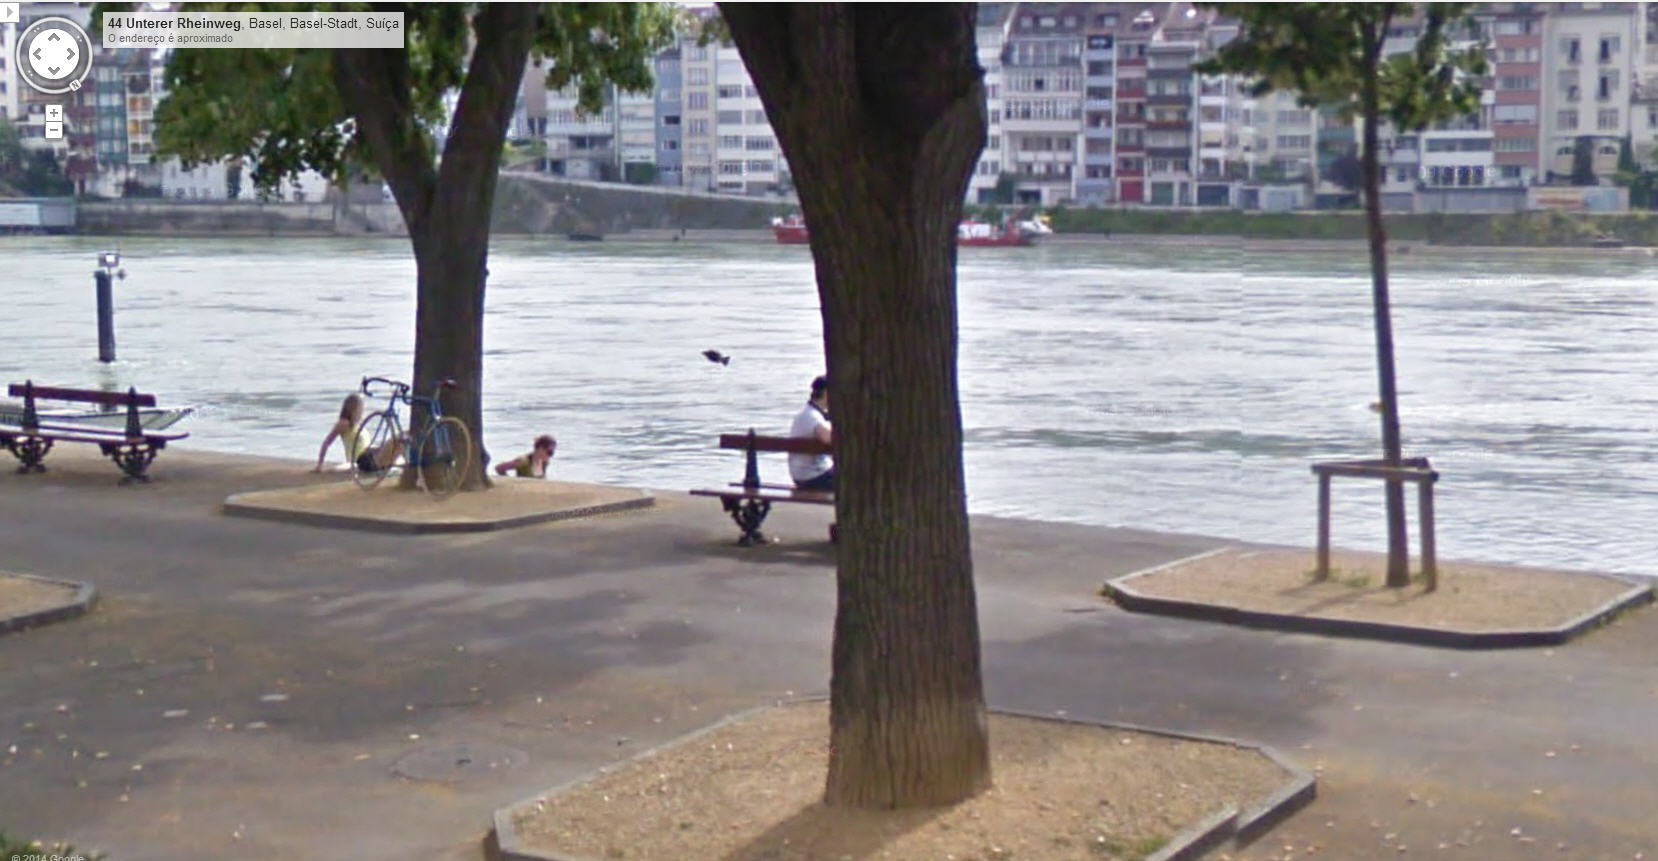 Did Google Street View capture a fish jumping?